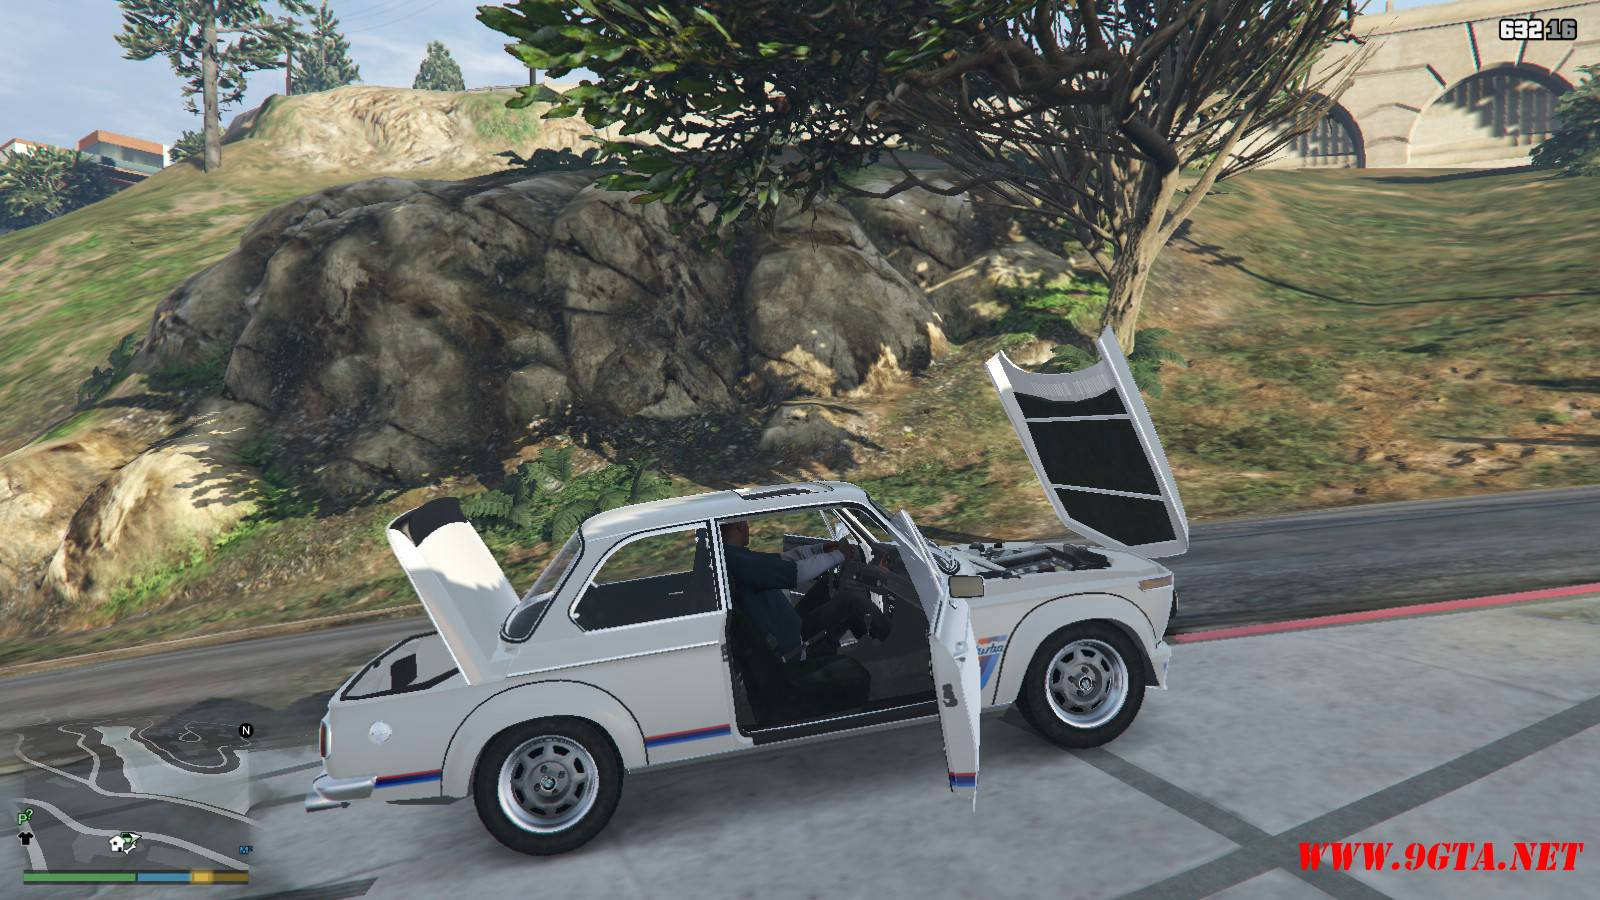 2002 BMW Turbo Mod For GTA5 (16)